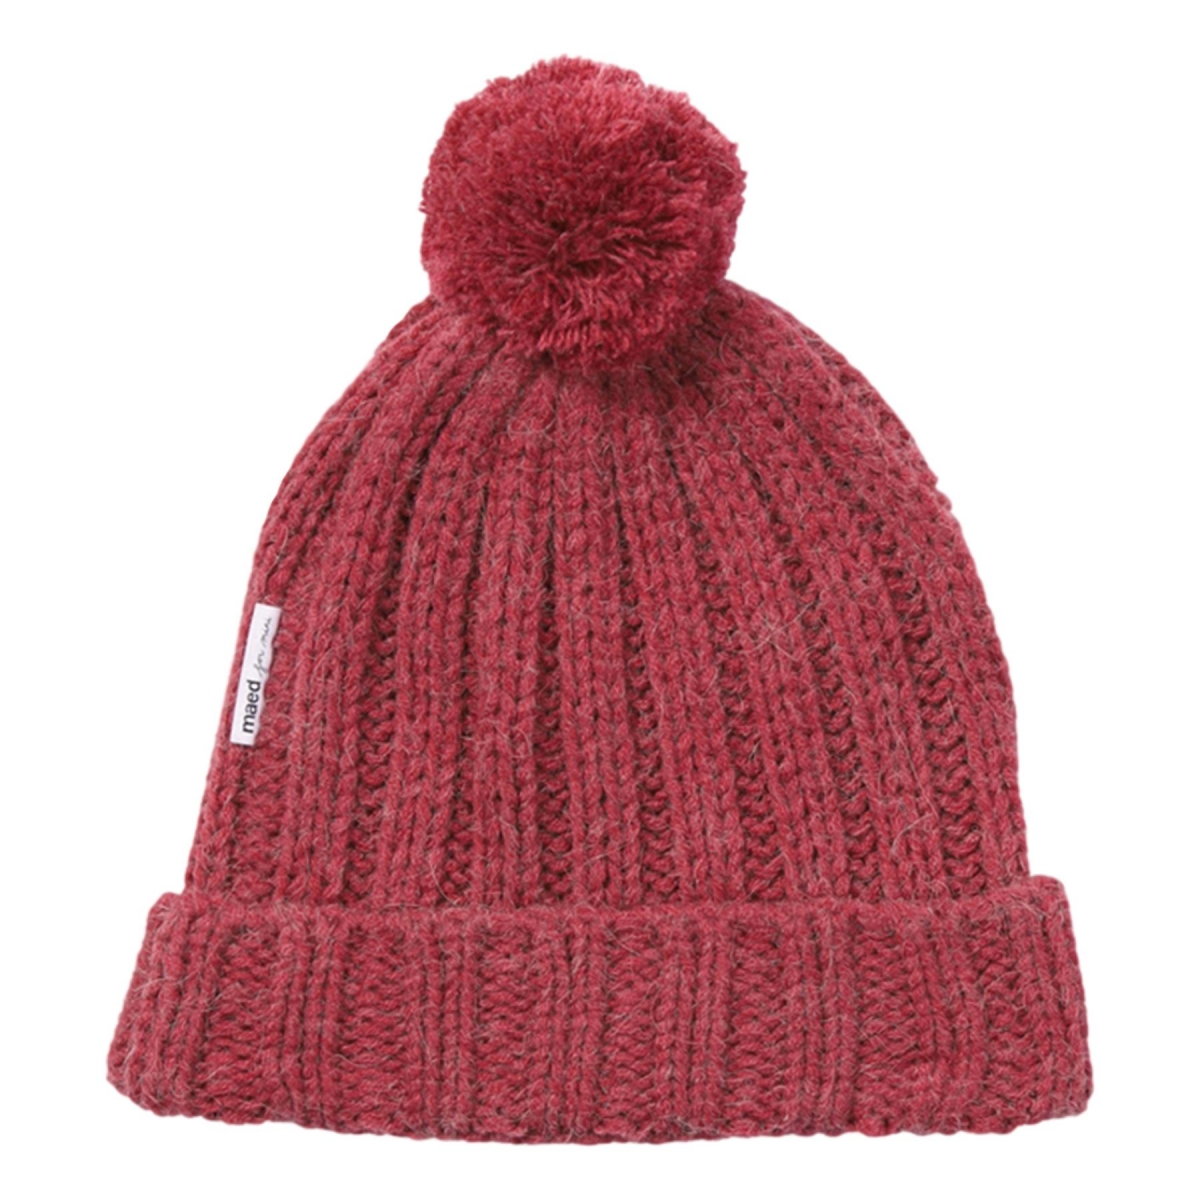 Maed for mini - Knit Hat rosy rabbit - 1